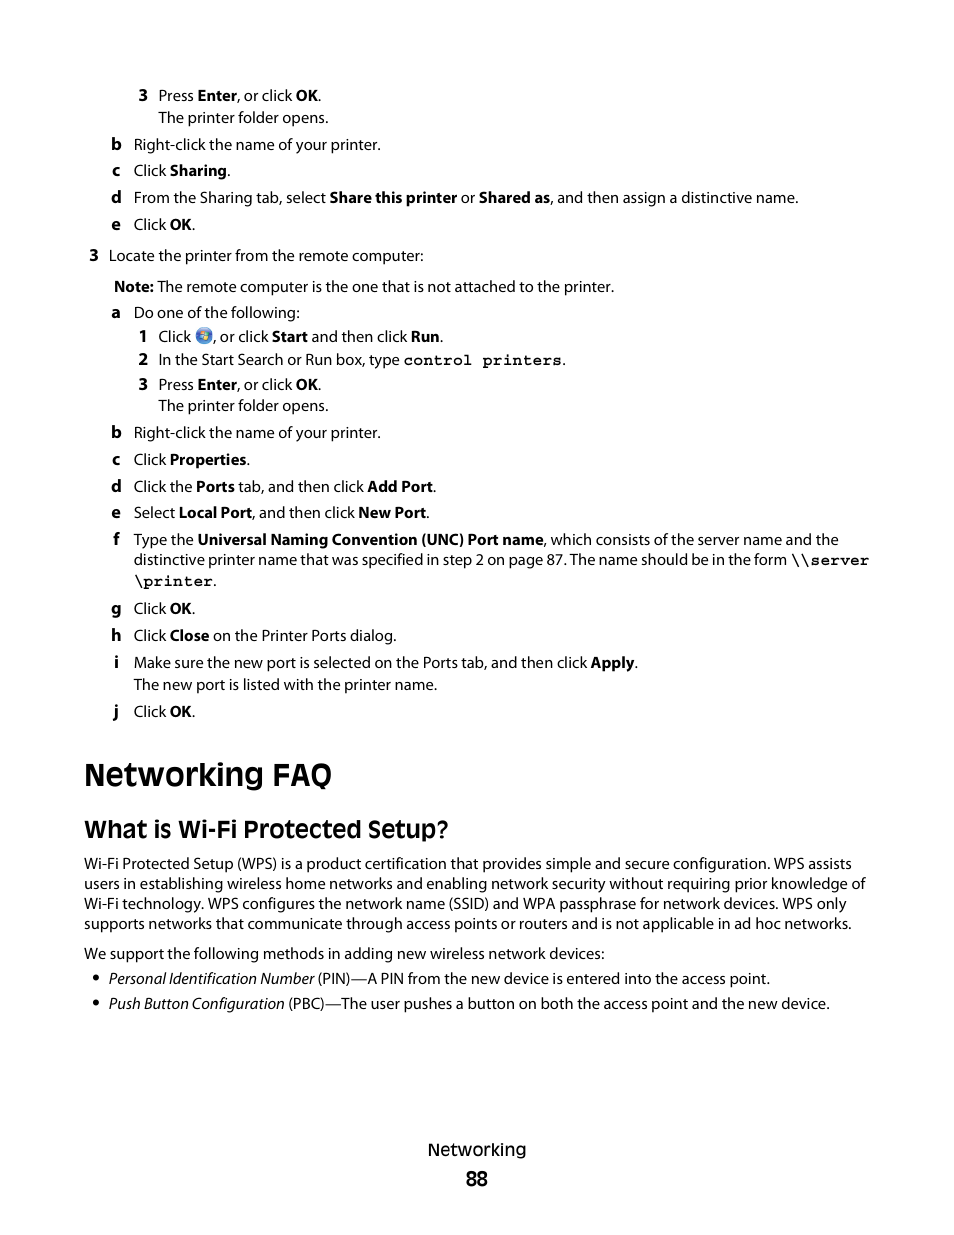 Networking faq, What is wi-fi protected setup | Dell V515w All In One  Wireless Inkjet Printer User Manual | Page 88 / 141